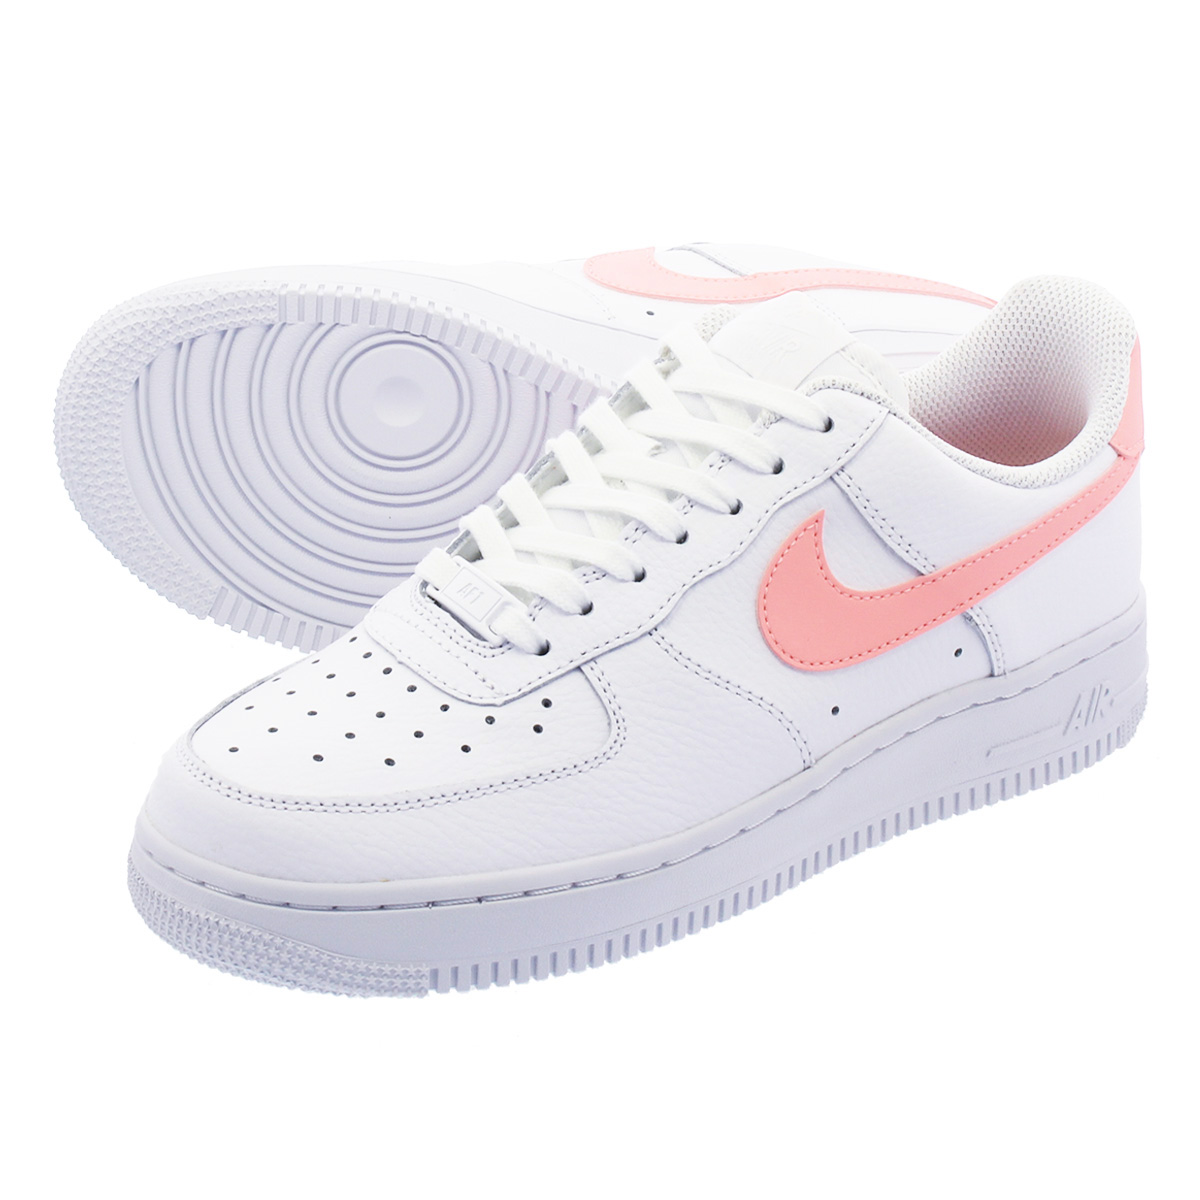 the best attitude 921bf 7381c NIKE WMNS AIR FORCE 1 07 Nike women air force 1 07 WHITE ORACLE PINK WHITE  ah0287-102